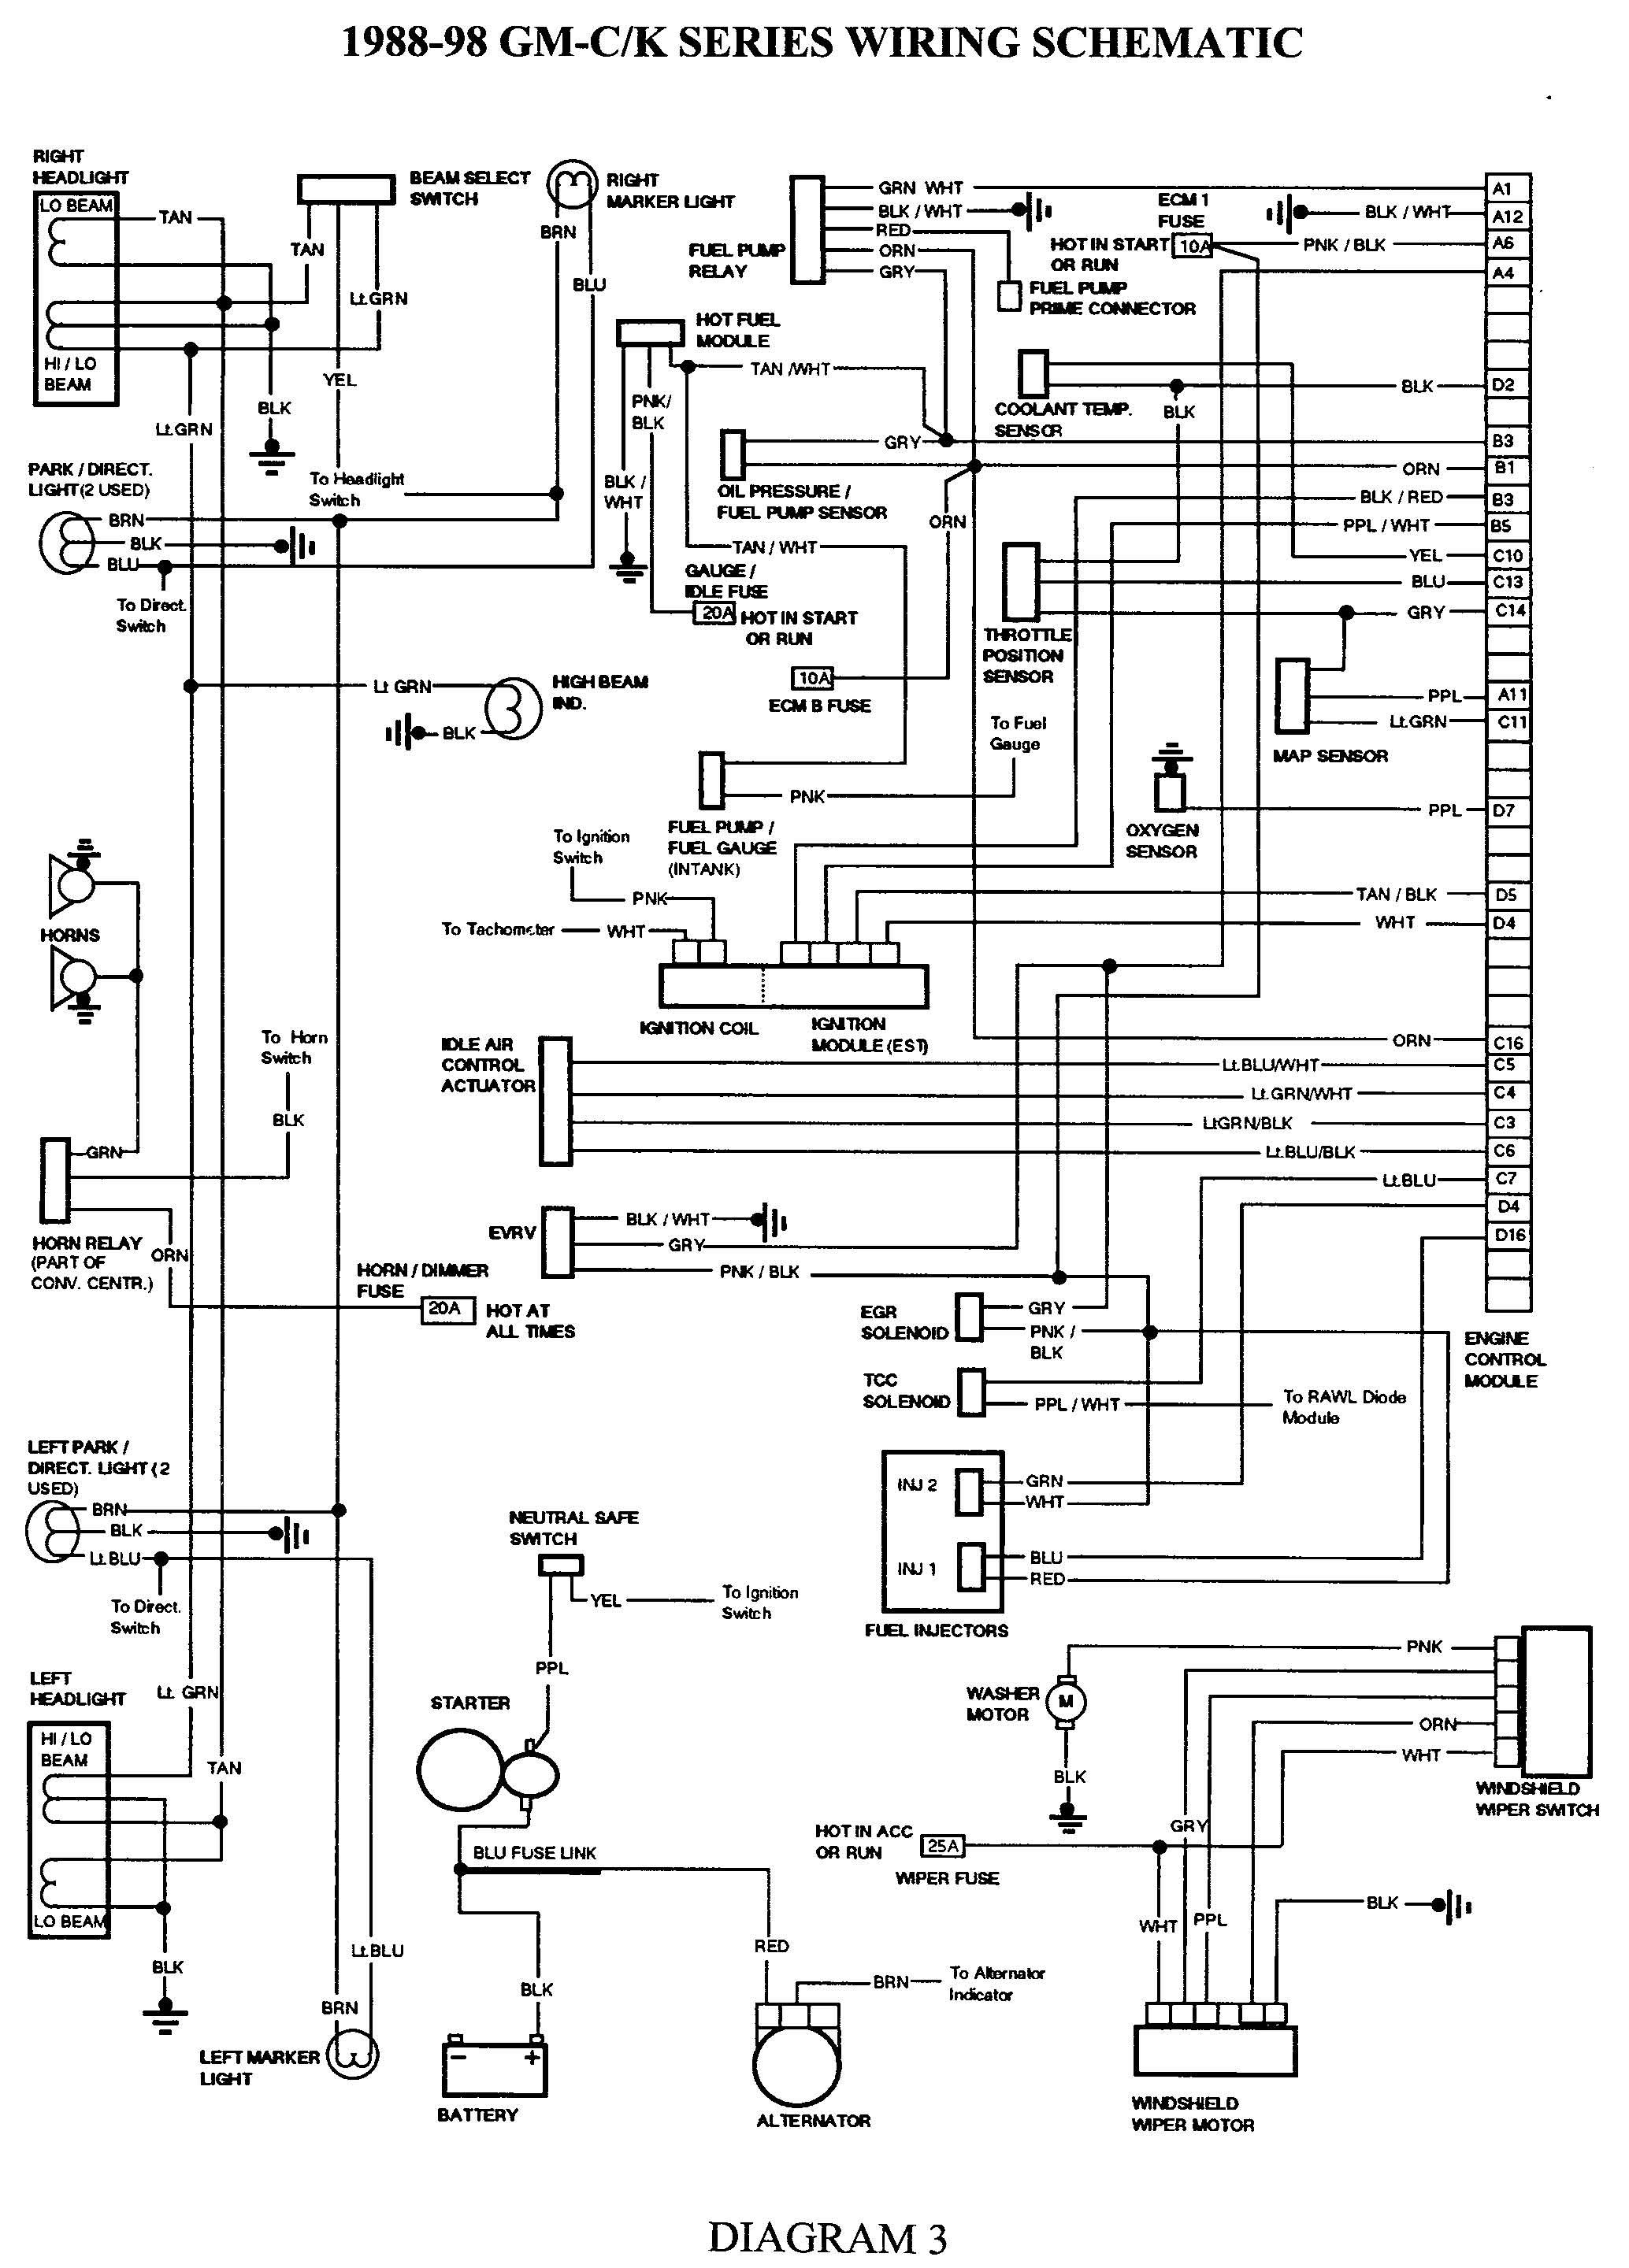 Ke Light Wiring Diagram Chevrolet on chevrolet solenoid wiring diagram, chevrolet ignition wiring diagram, chevrolet turn signal wiring diagram,